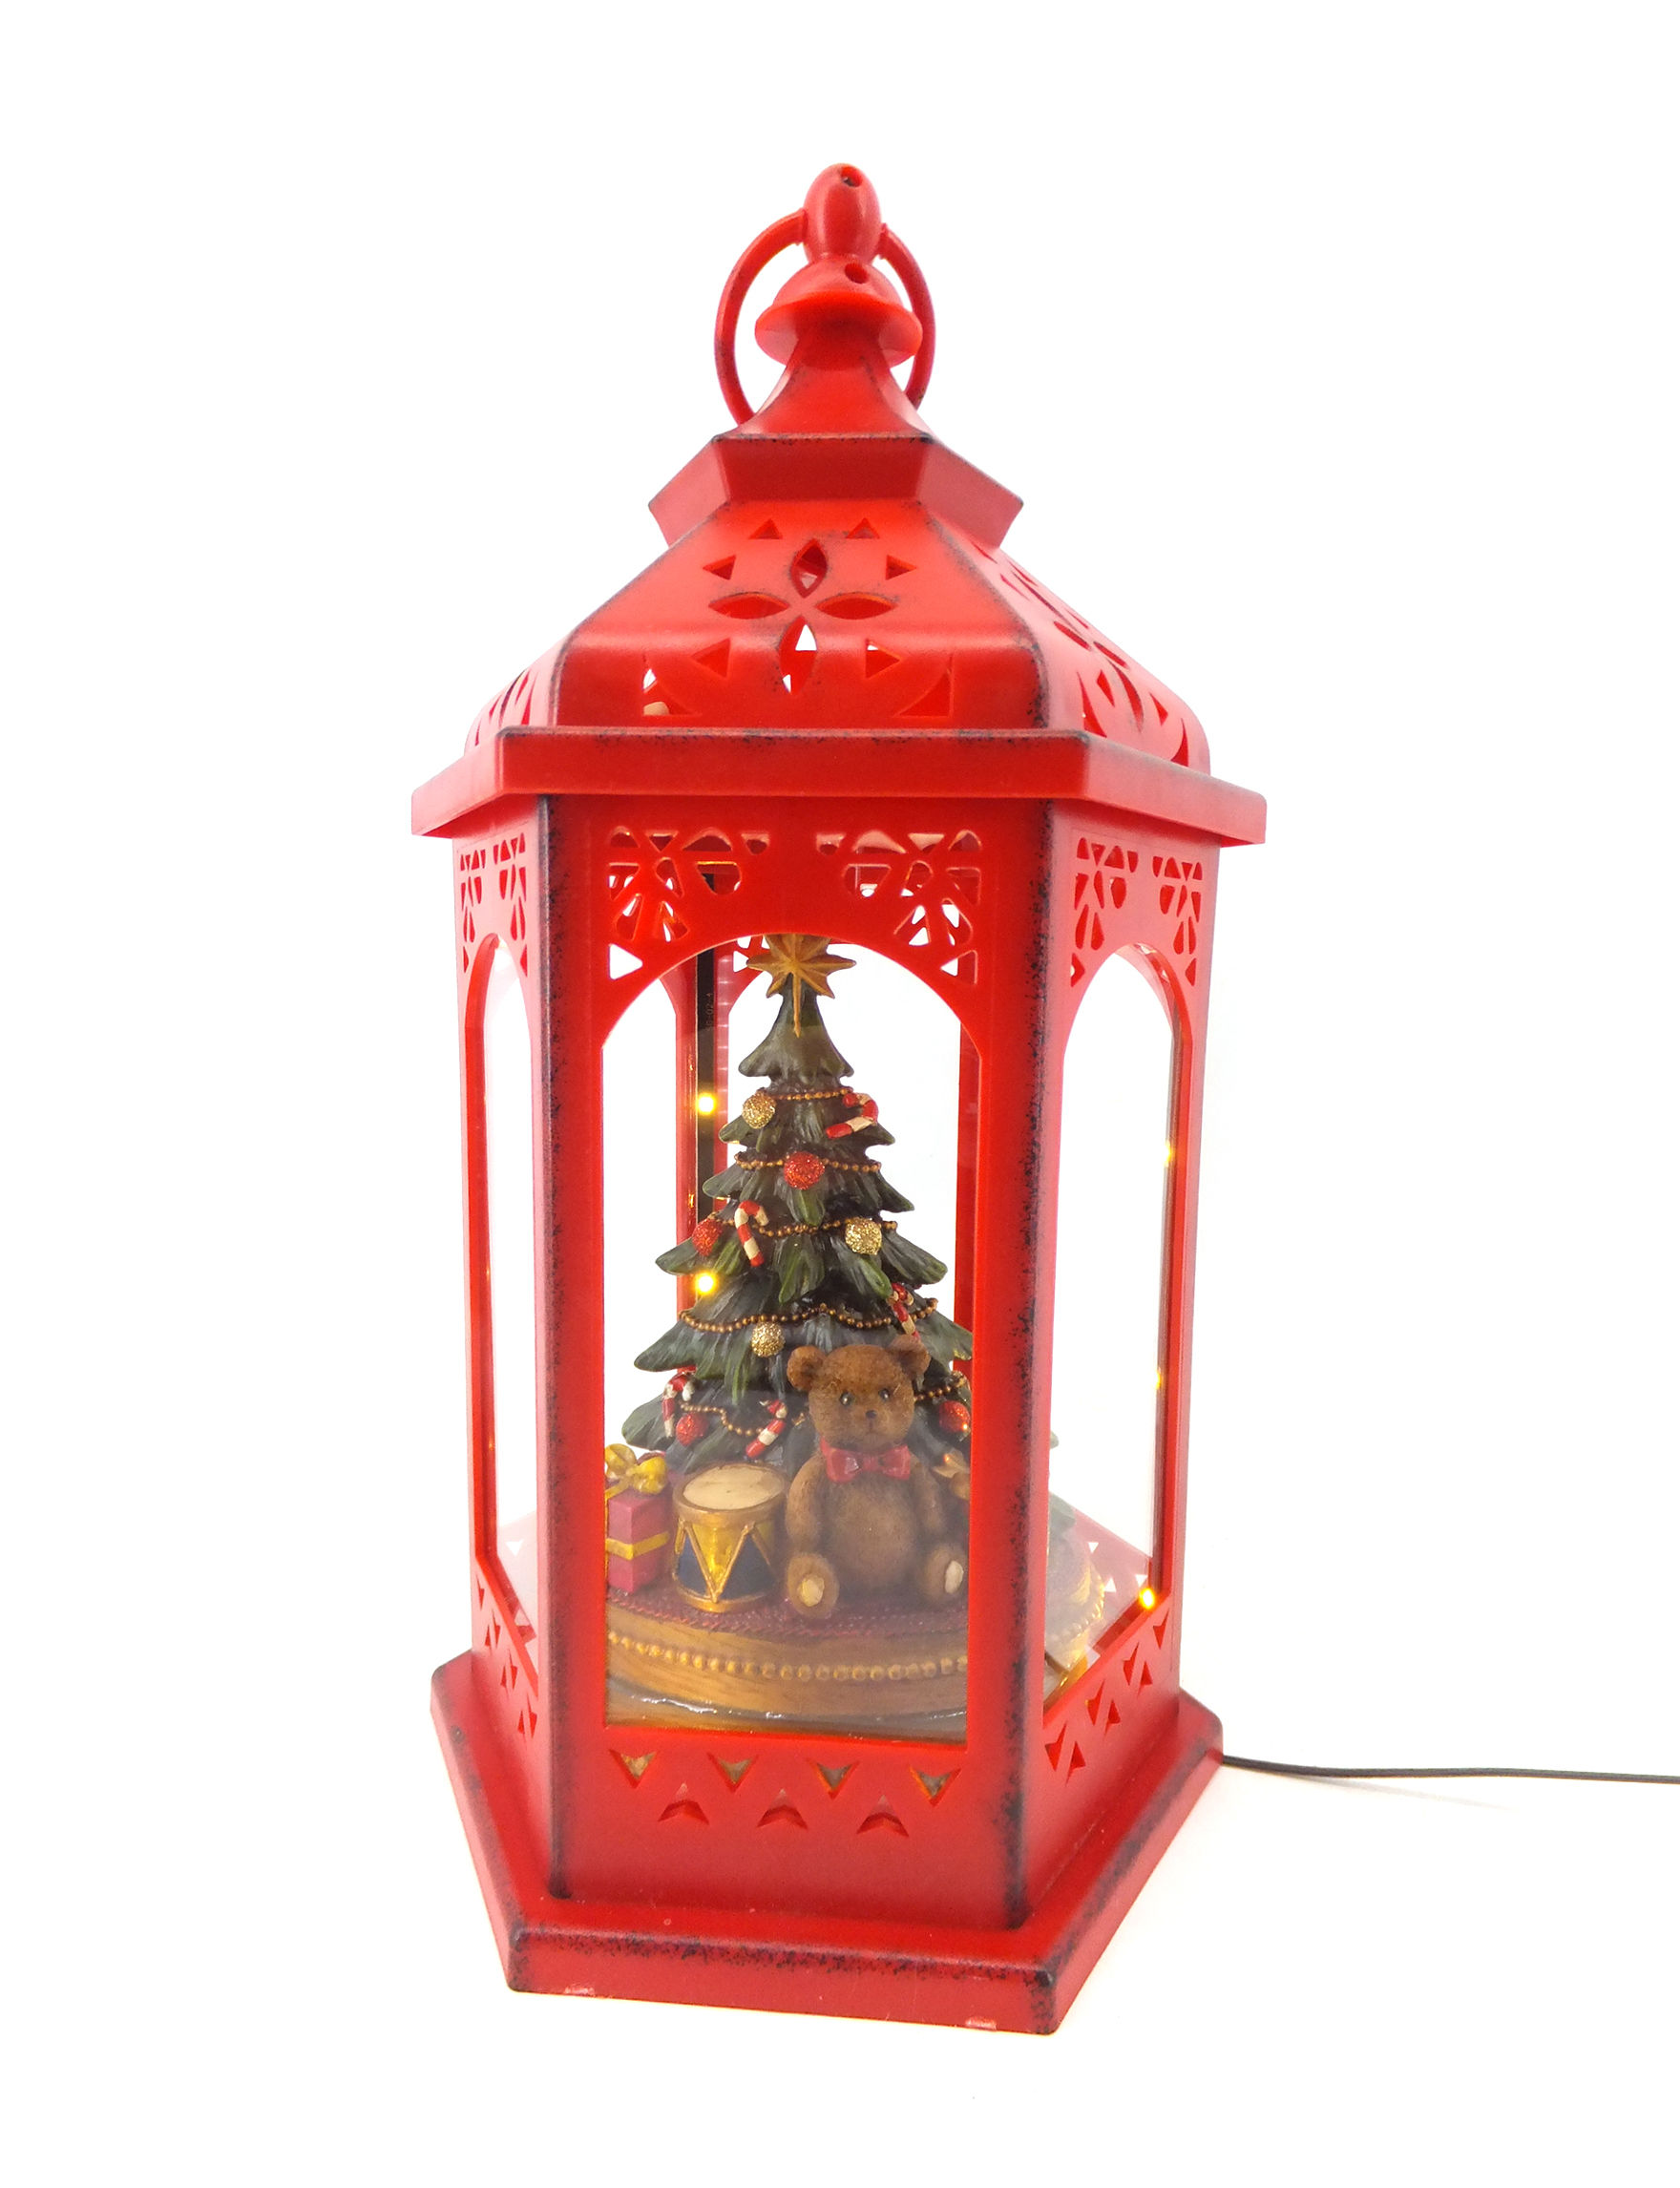 Jingle Bell Lane Red Decorative Objects Holiday Decor